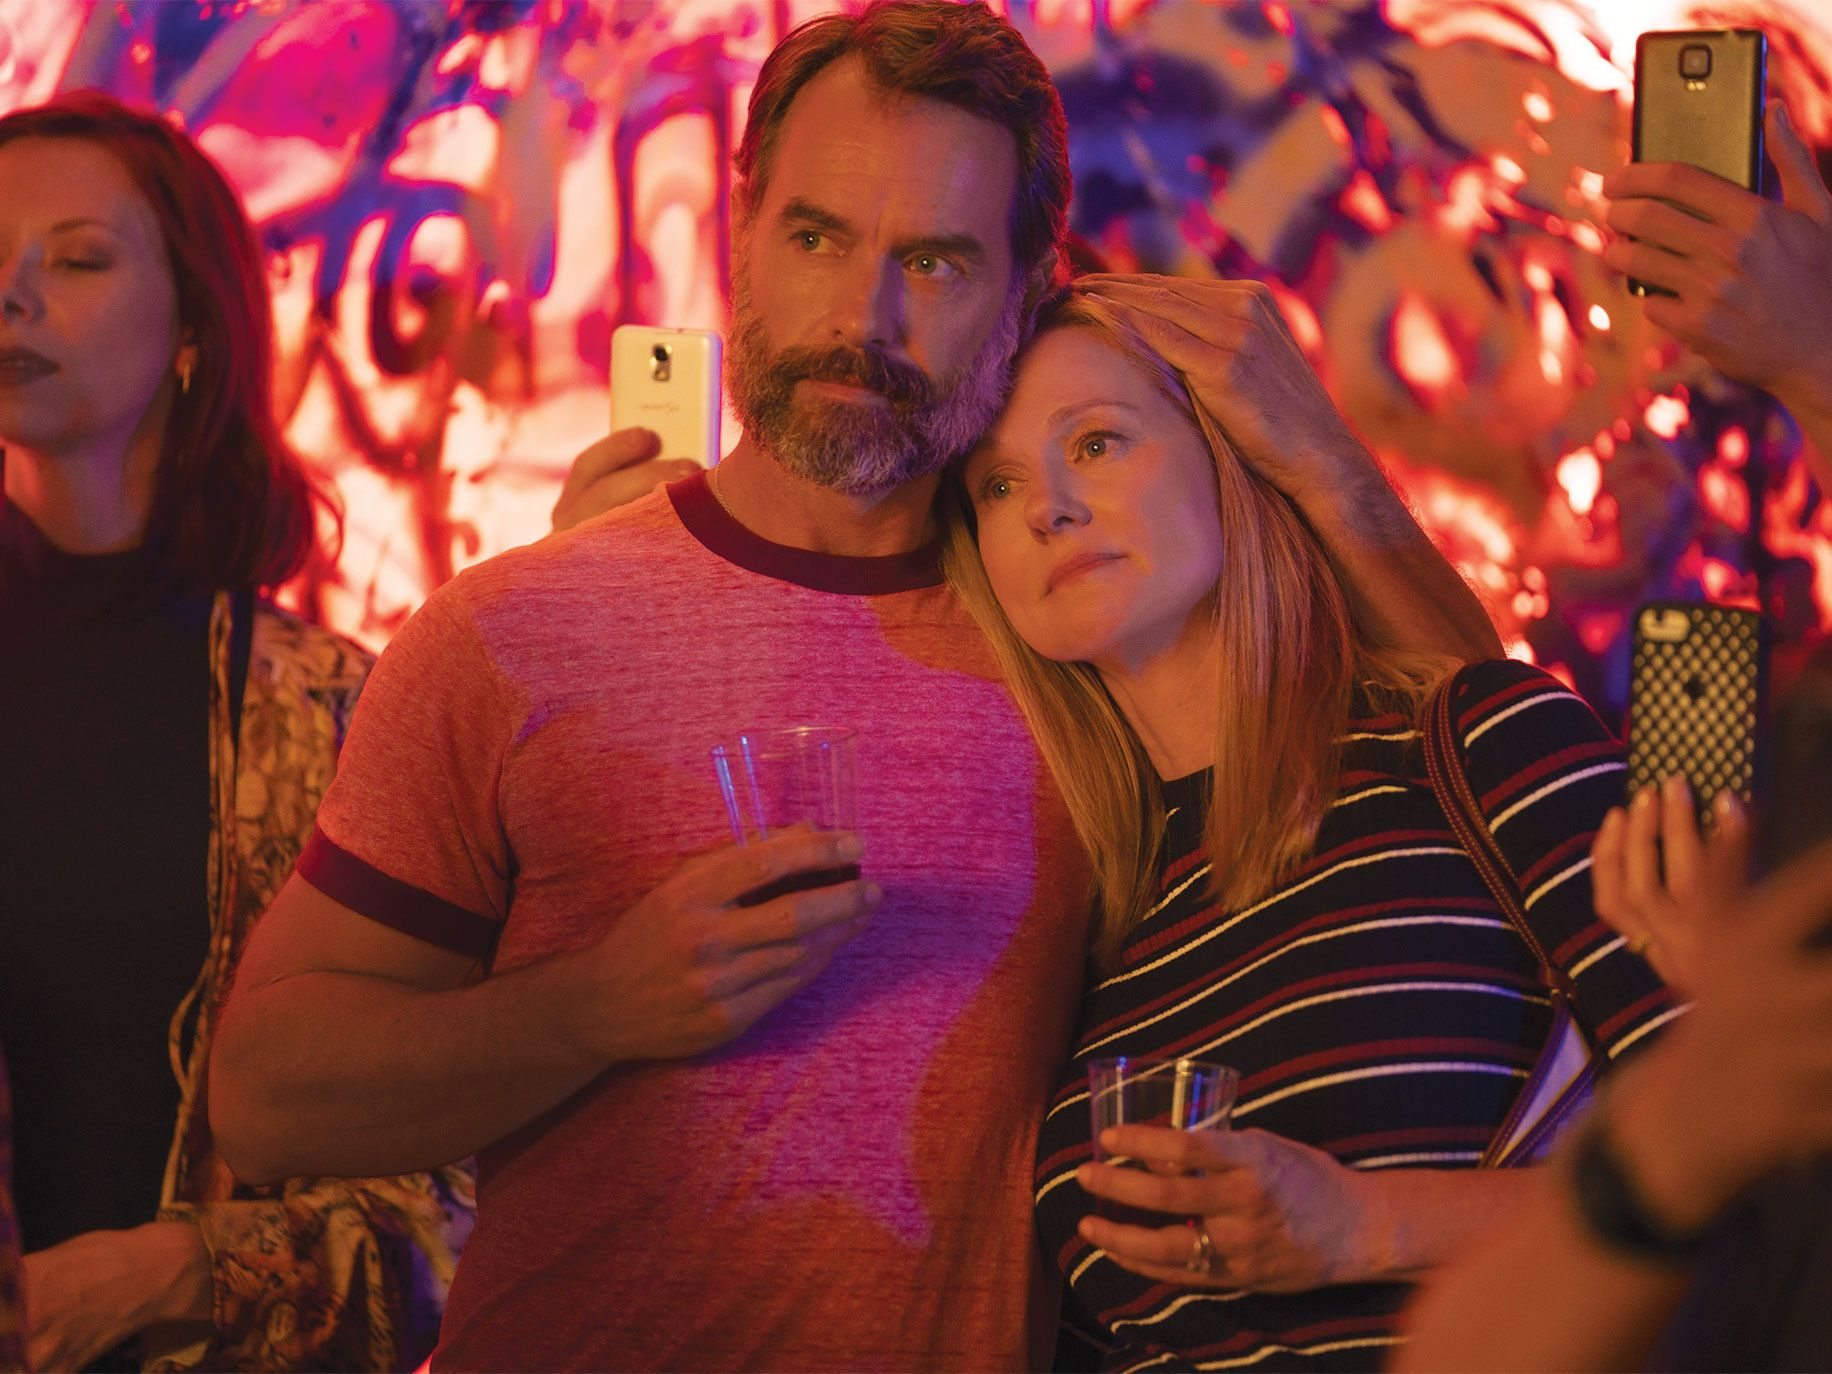 Actor Murray Bartlett joined original miniseries cast member Laura Linney in last year's version of the show, which streamed on Netflix.